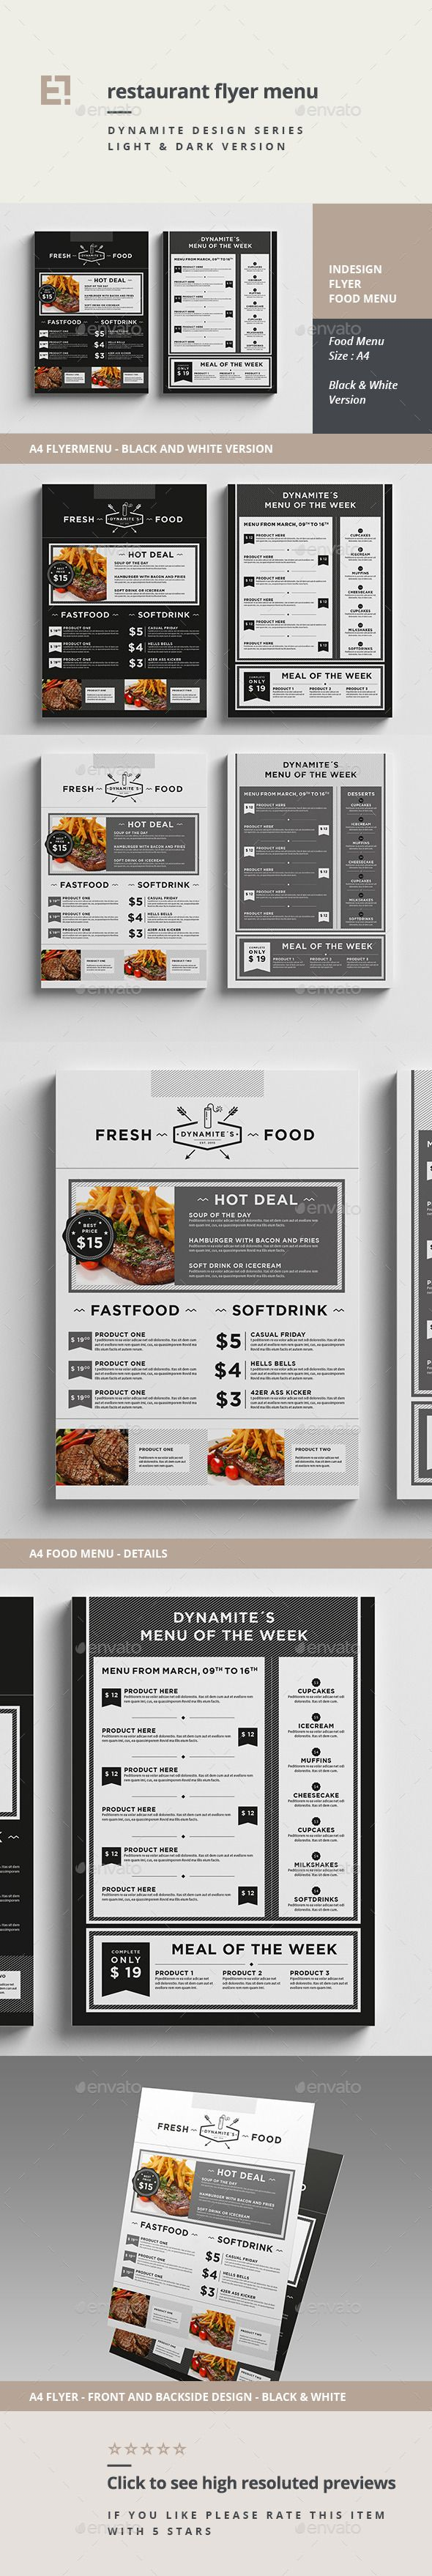 Restaurant Menu Flyer #poster #print template #restaurant #restaurant menu #retro #$7